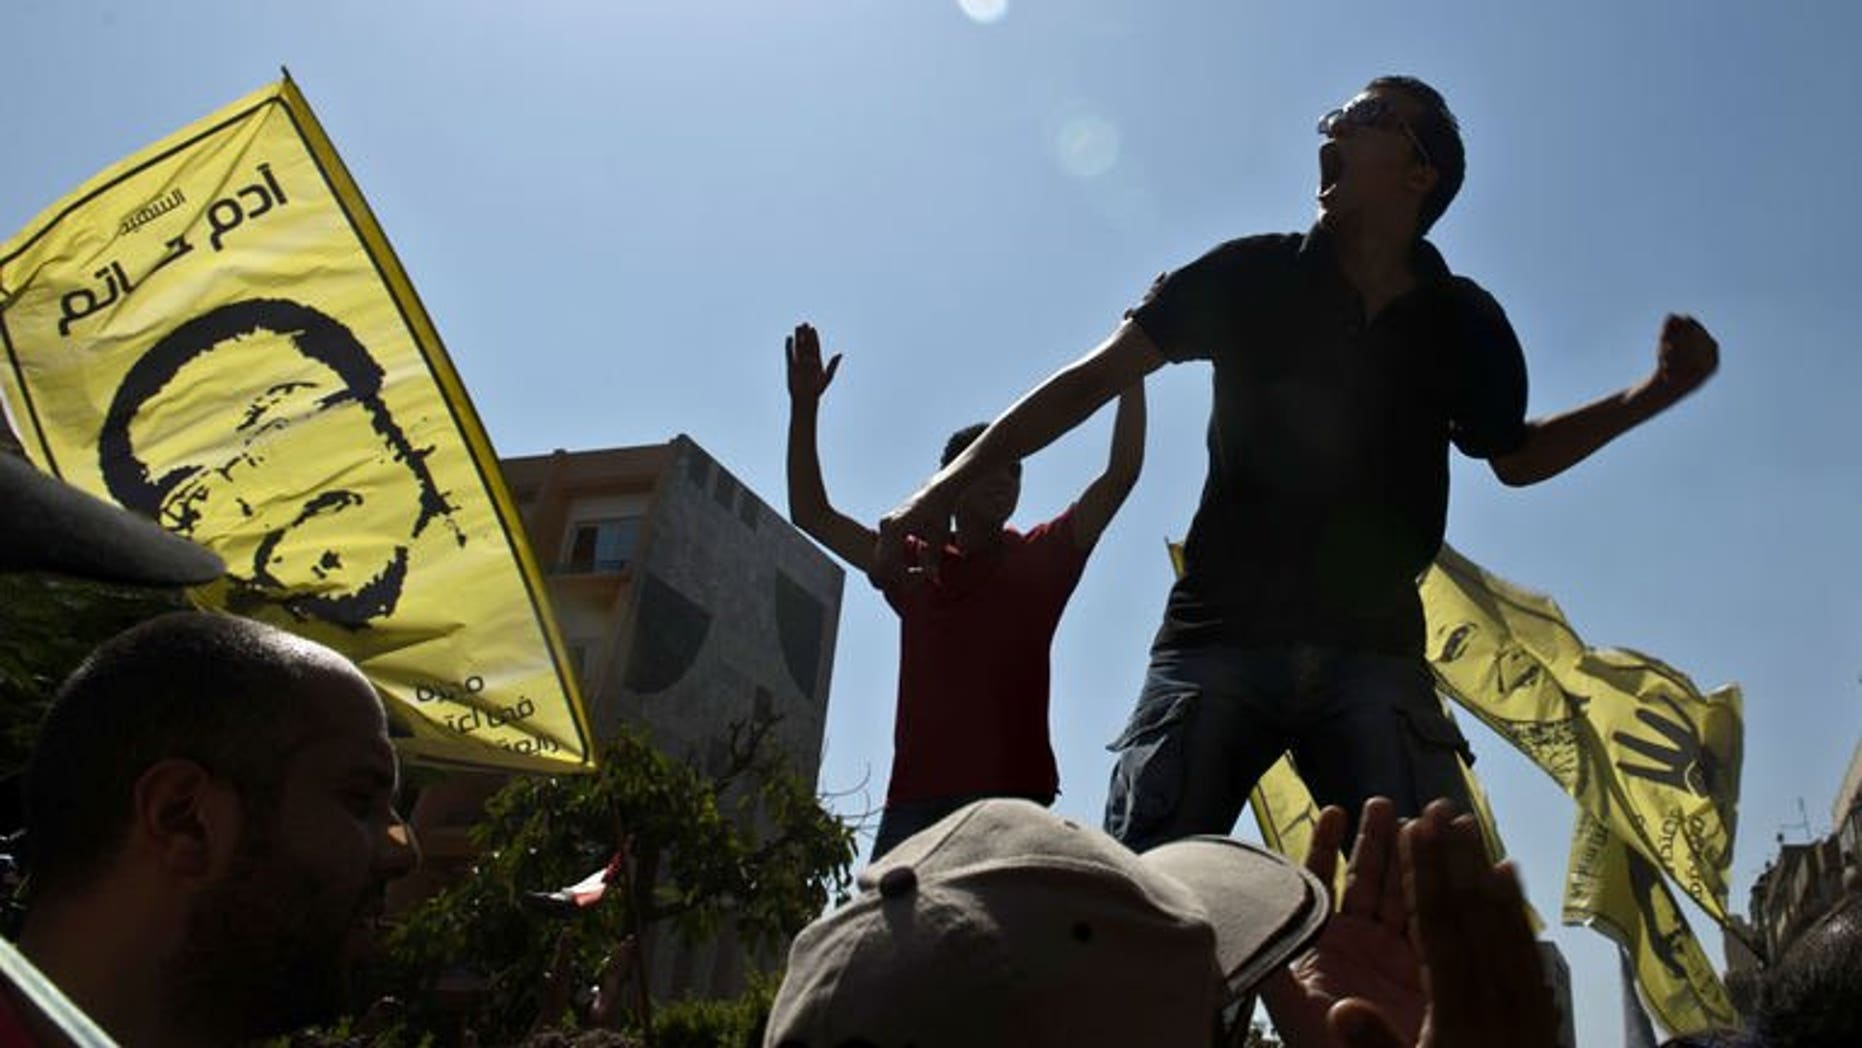 Supporters of ousted Egyptian president Mohamed Morsi shout slogans during a demonstration against the military backed government on September 13, 2013 in the Egyptian capital, Cairo.